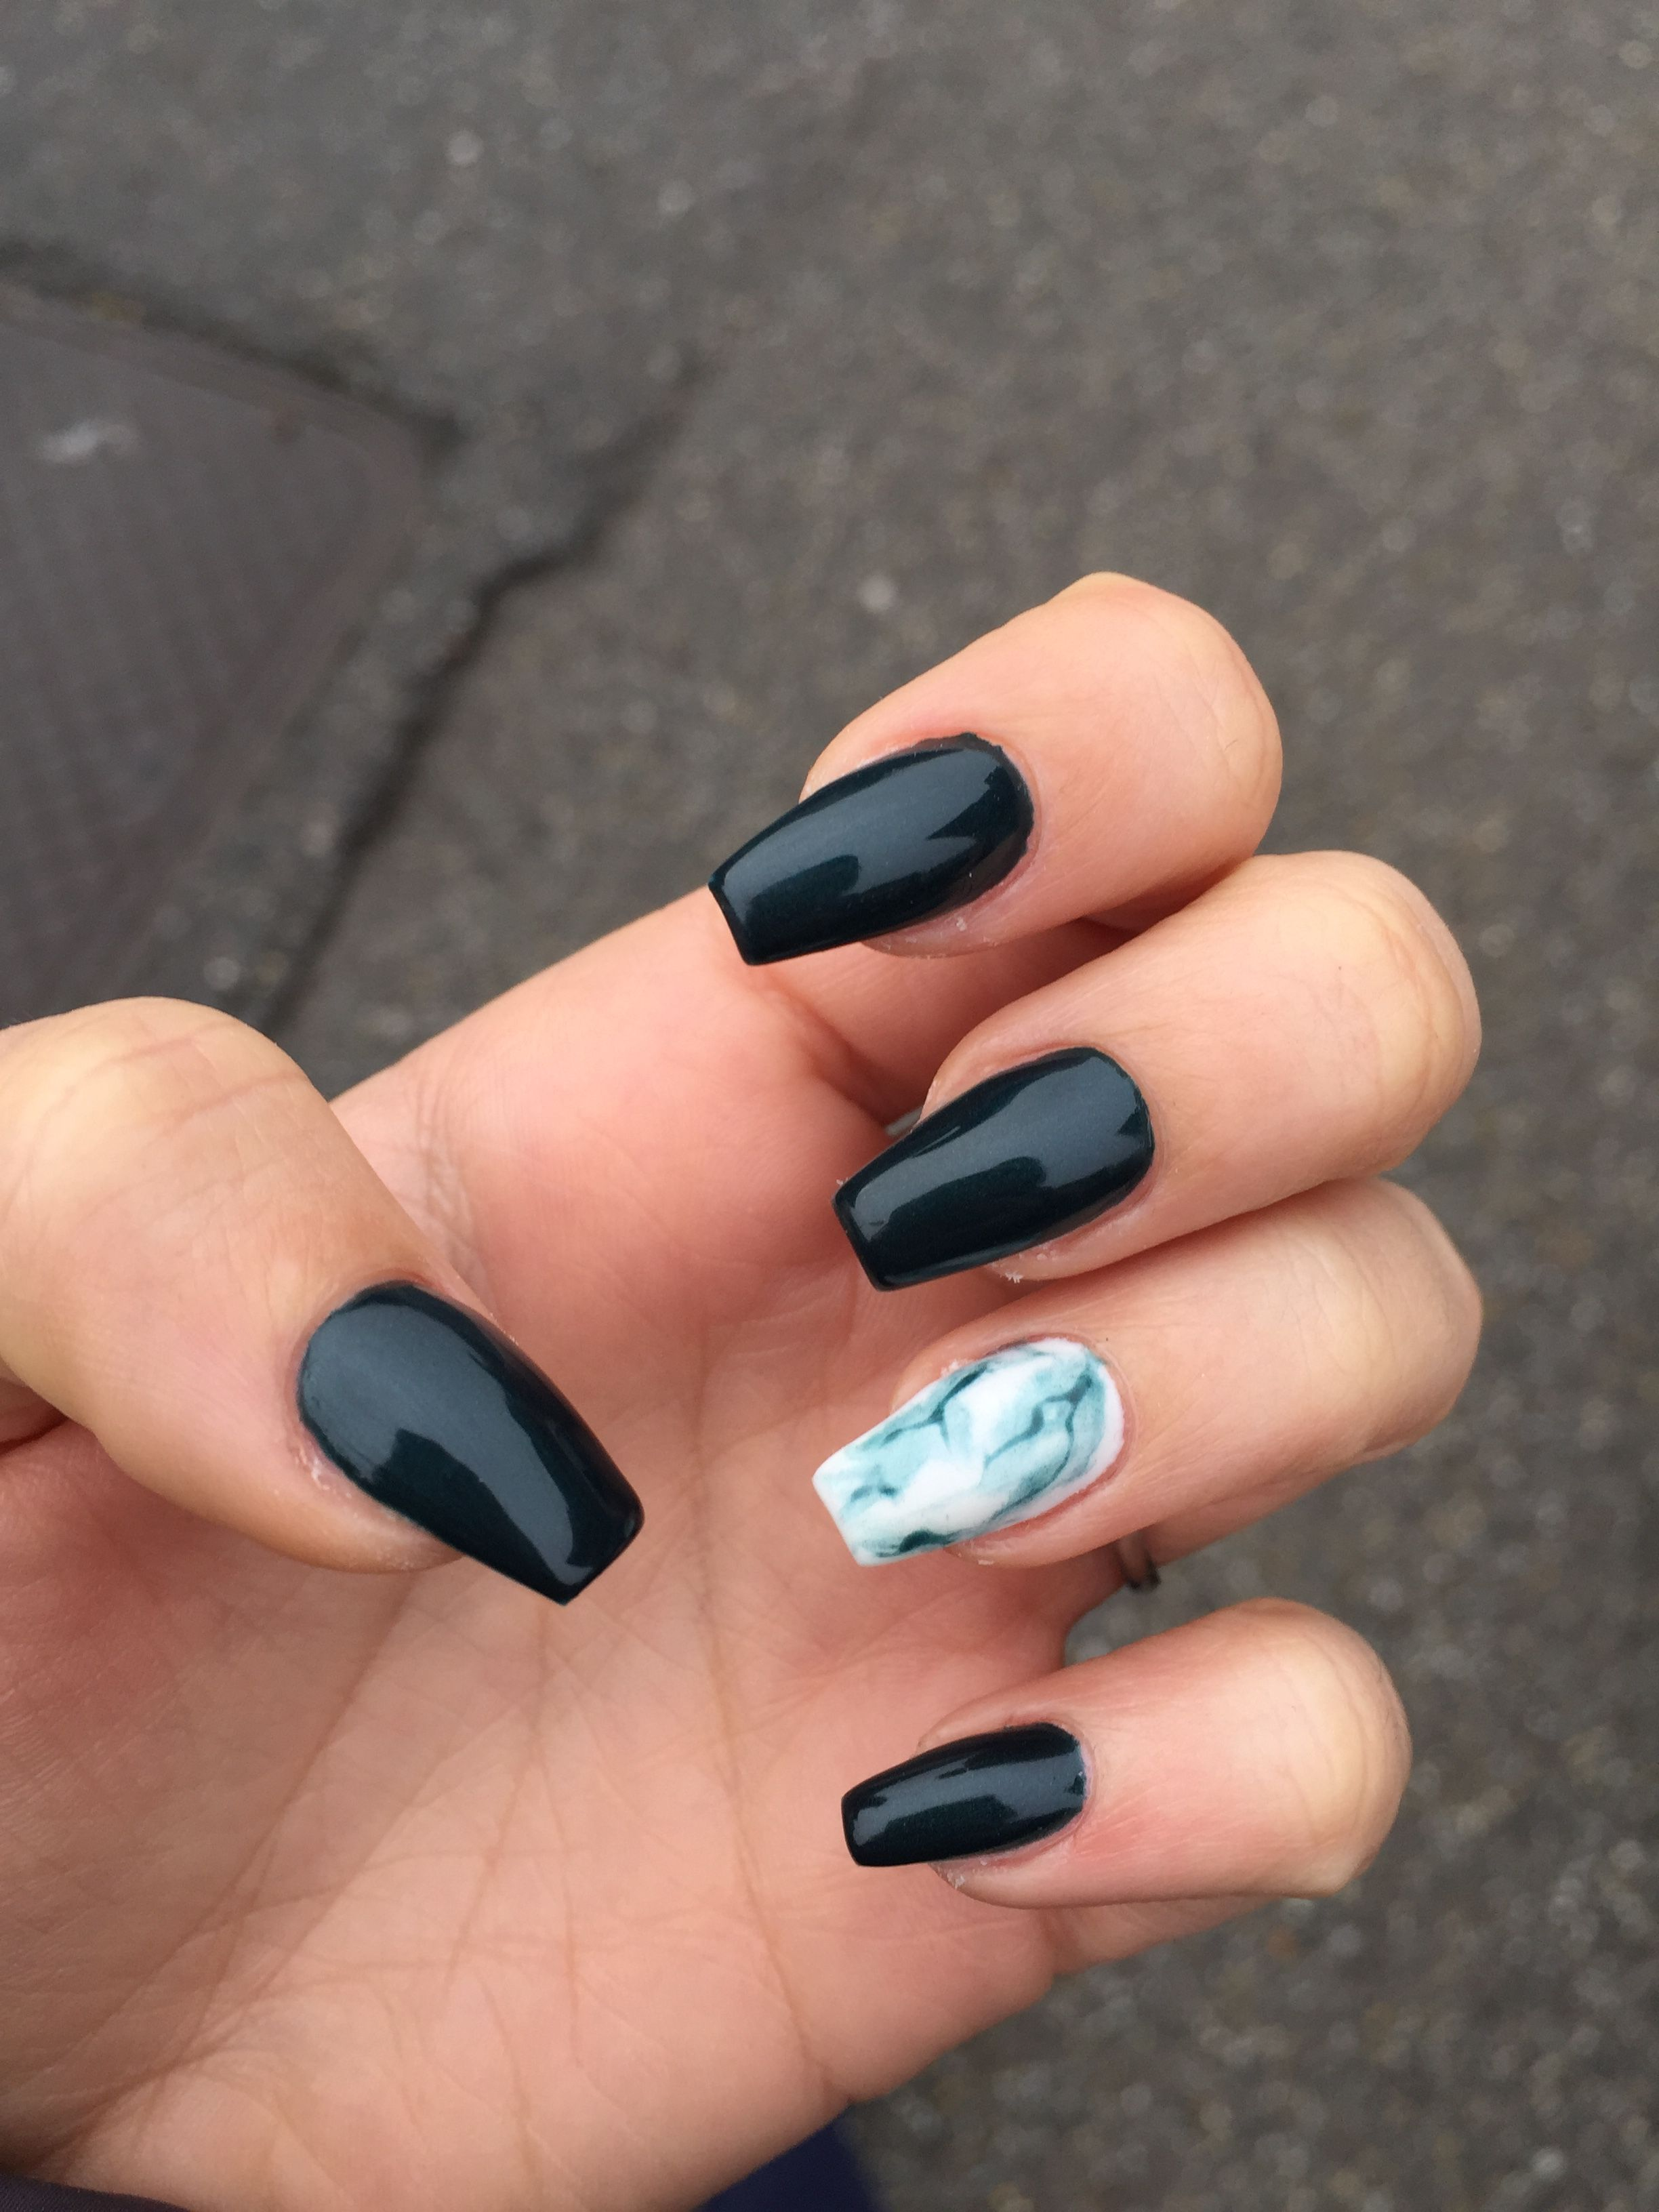 Pin by Alina Amelkhina on Nails